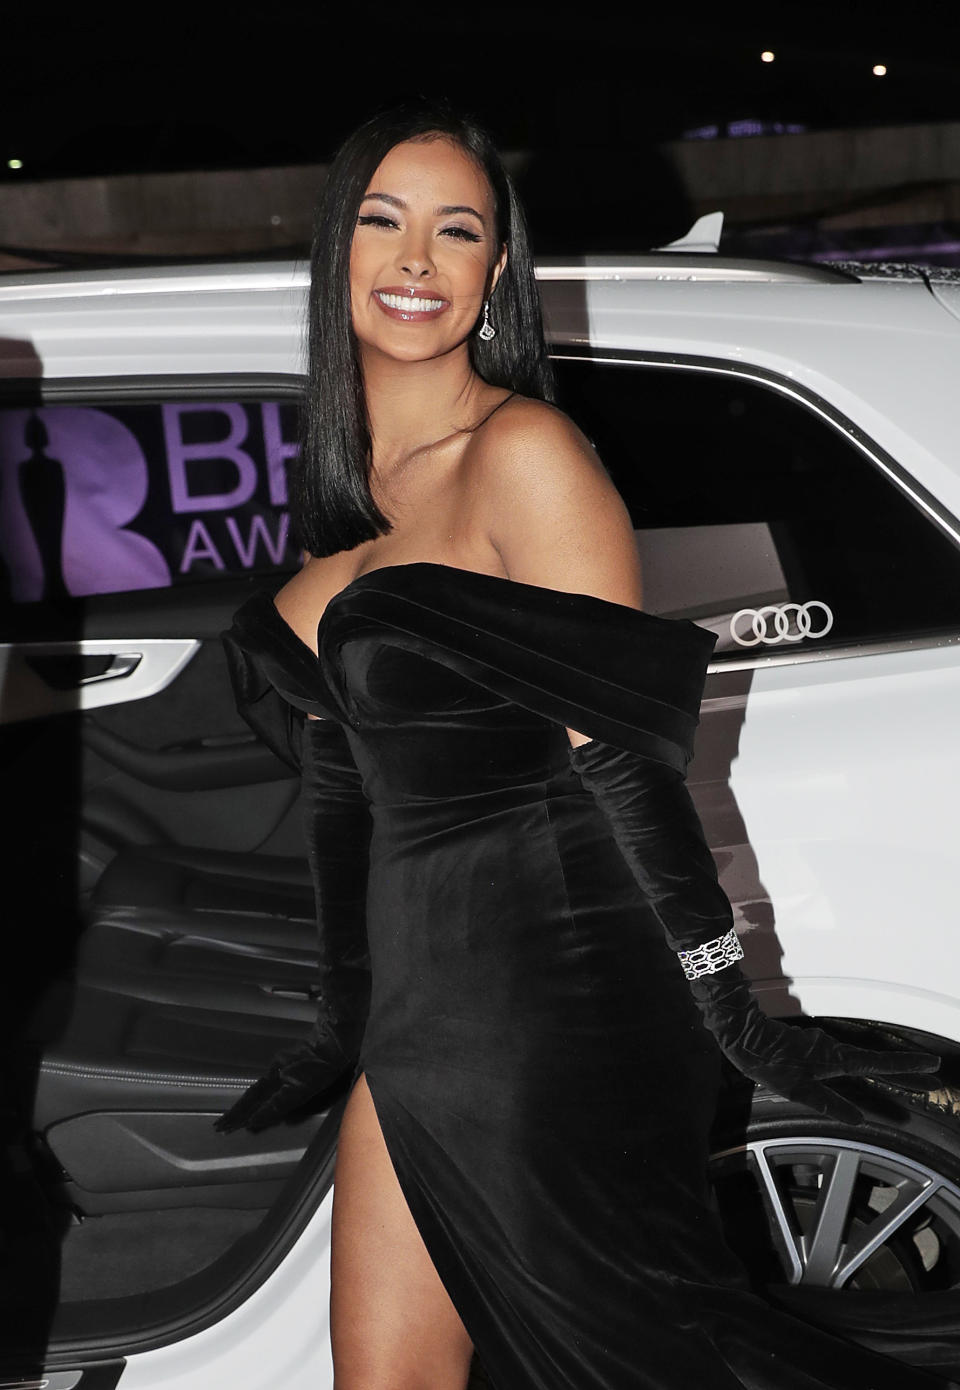 Maya Jama arrives in an Audi at the BRIT Awards at The O2 Arena on February 18, 2020 in London, England. (Photo by David M. Benett/Dave Benett/Getty Images for Audi UK)